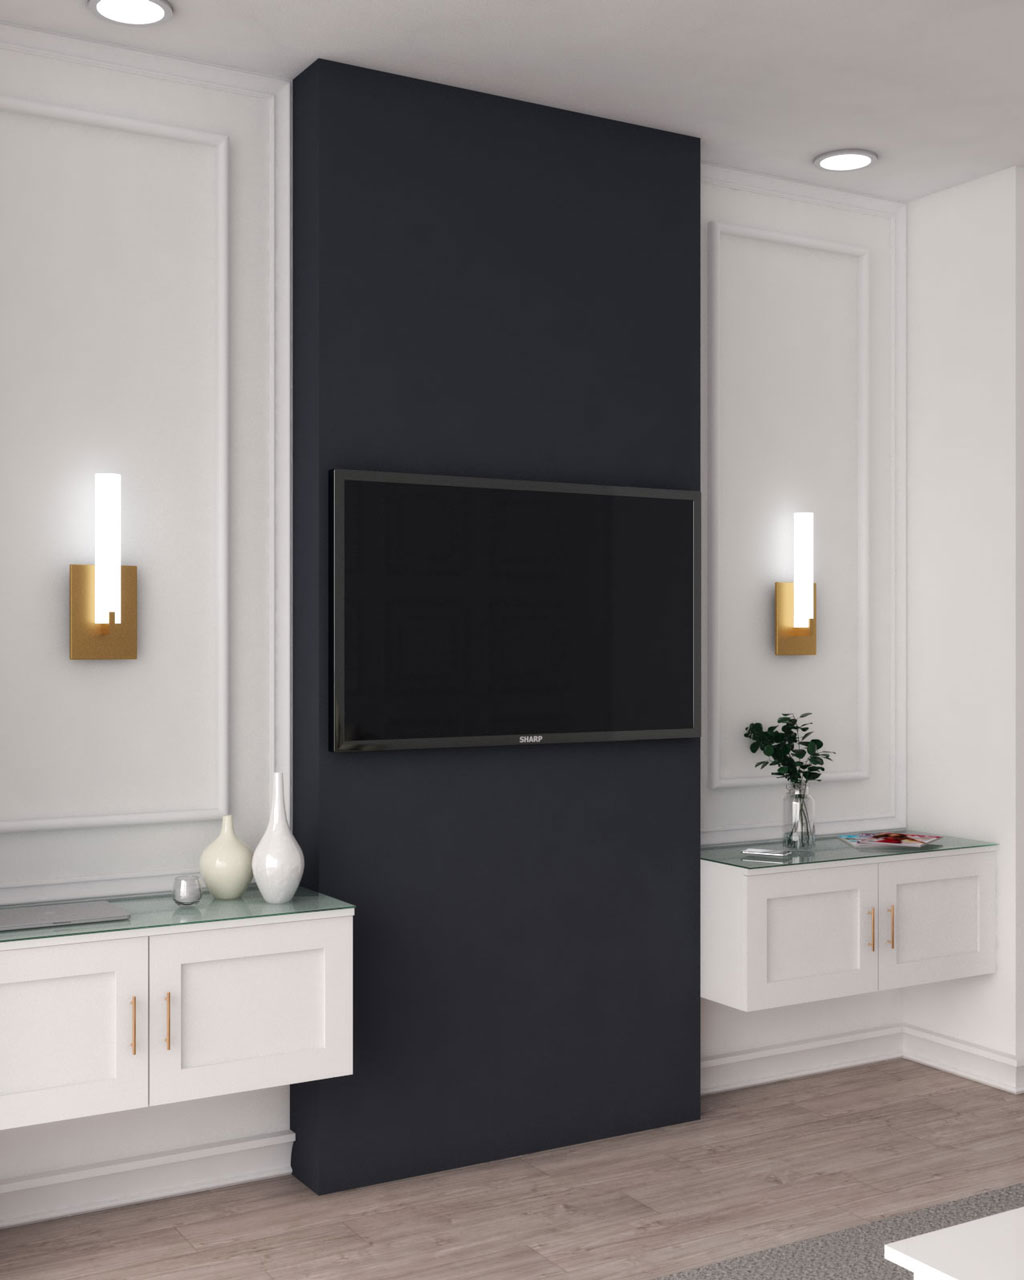 10 Gorgeous Accent Wall Ideas Behind Tv For Your Living Room Roomdsign Com